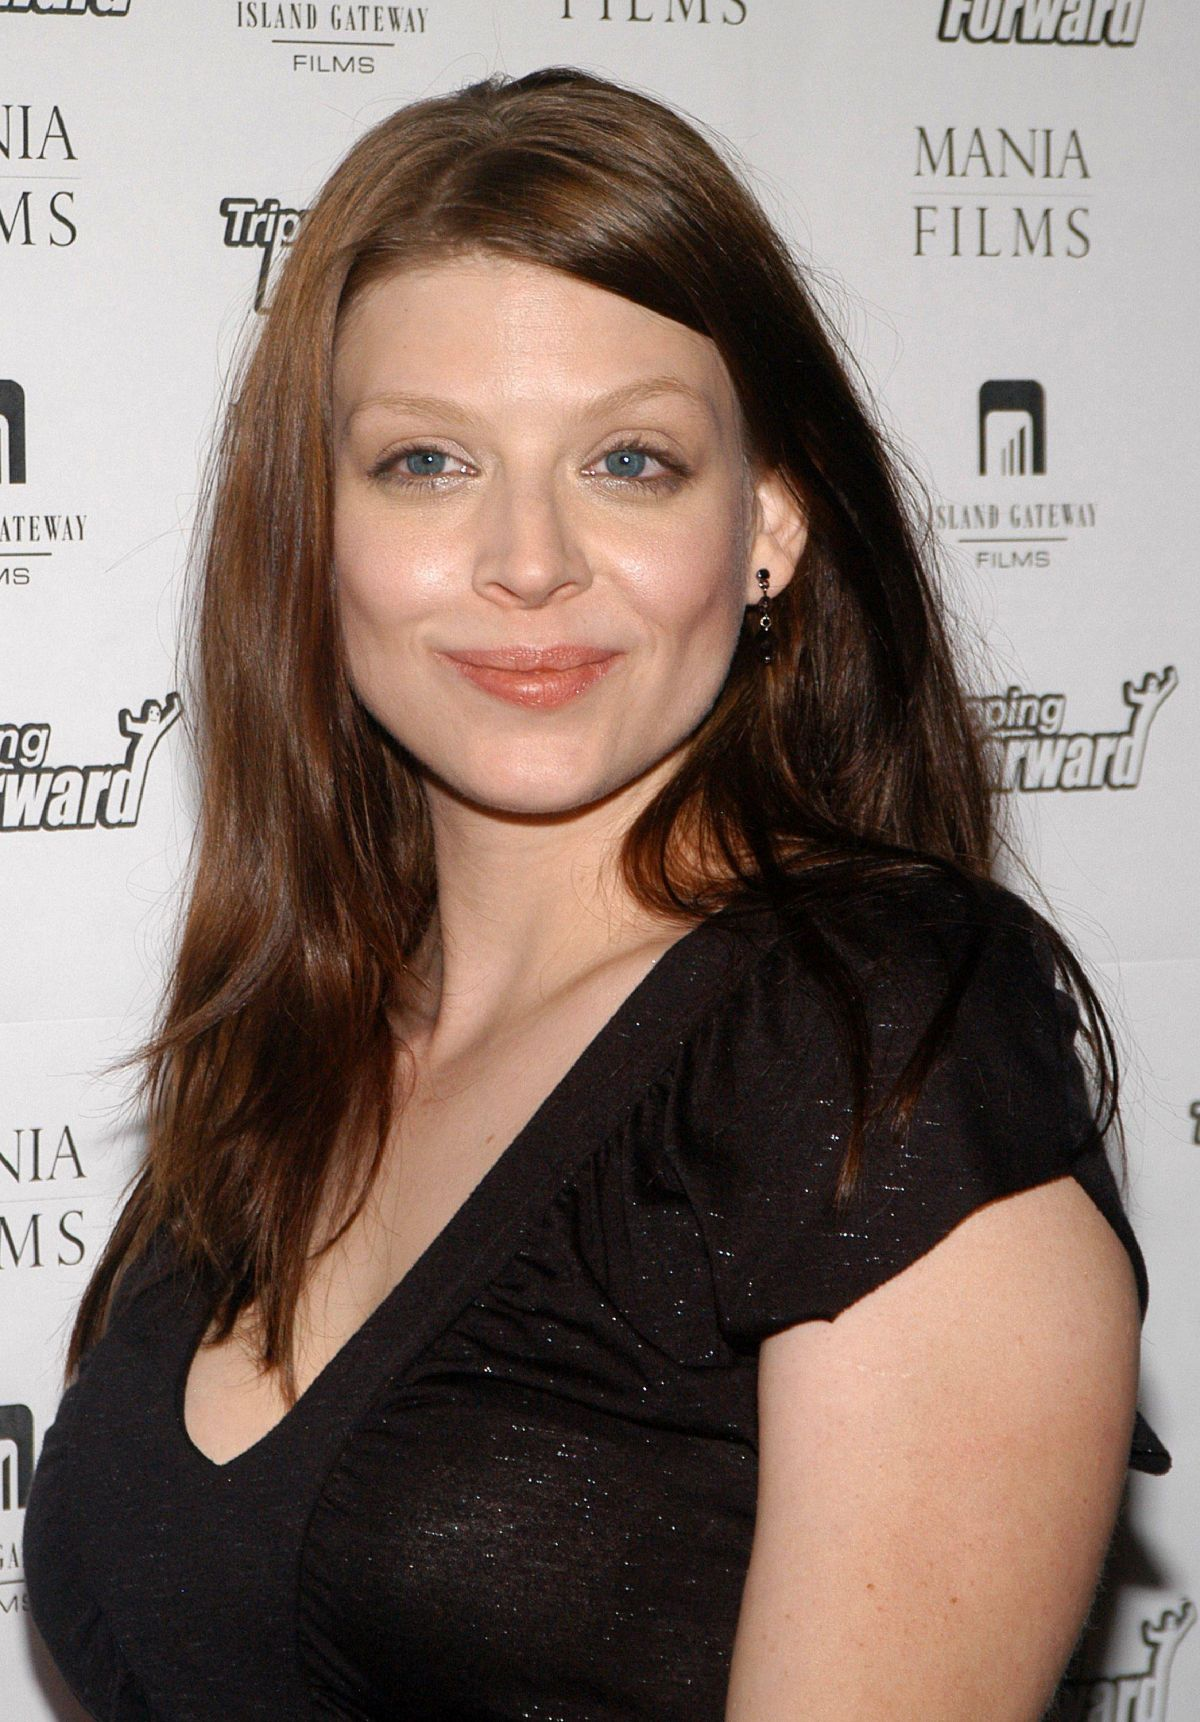 ¿Cuánto mide Amber Benson? - Real height Amber-benson-at-tripping-forward-premiere-in-beverly-hills_3